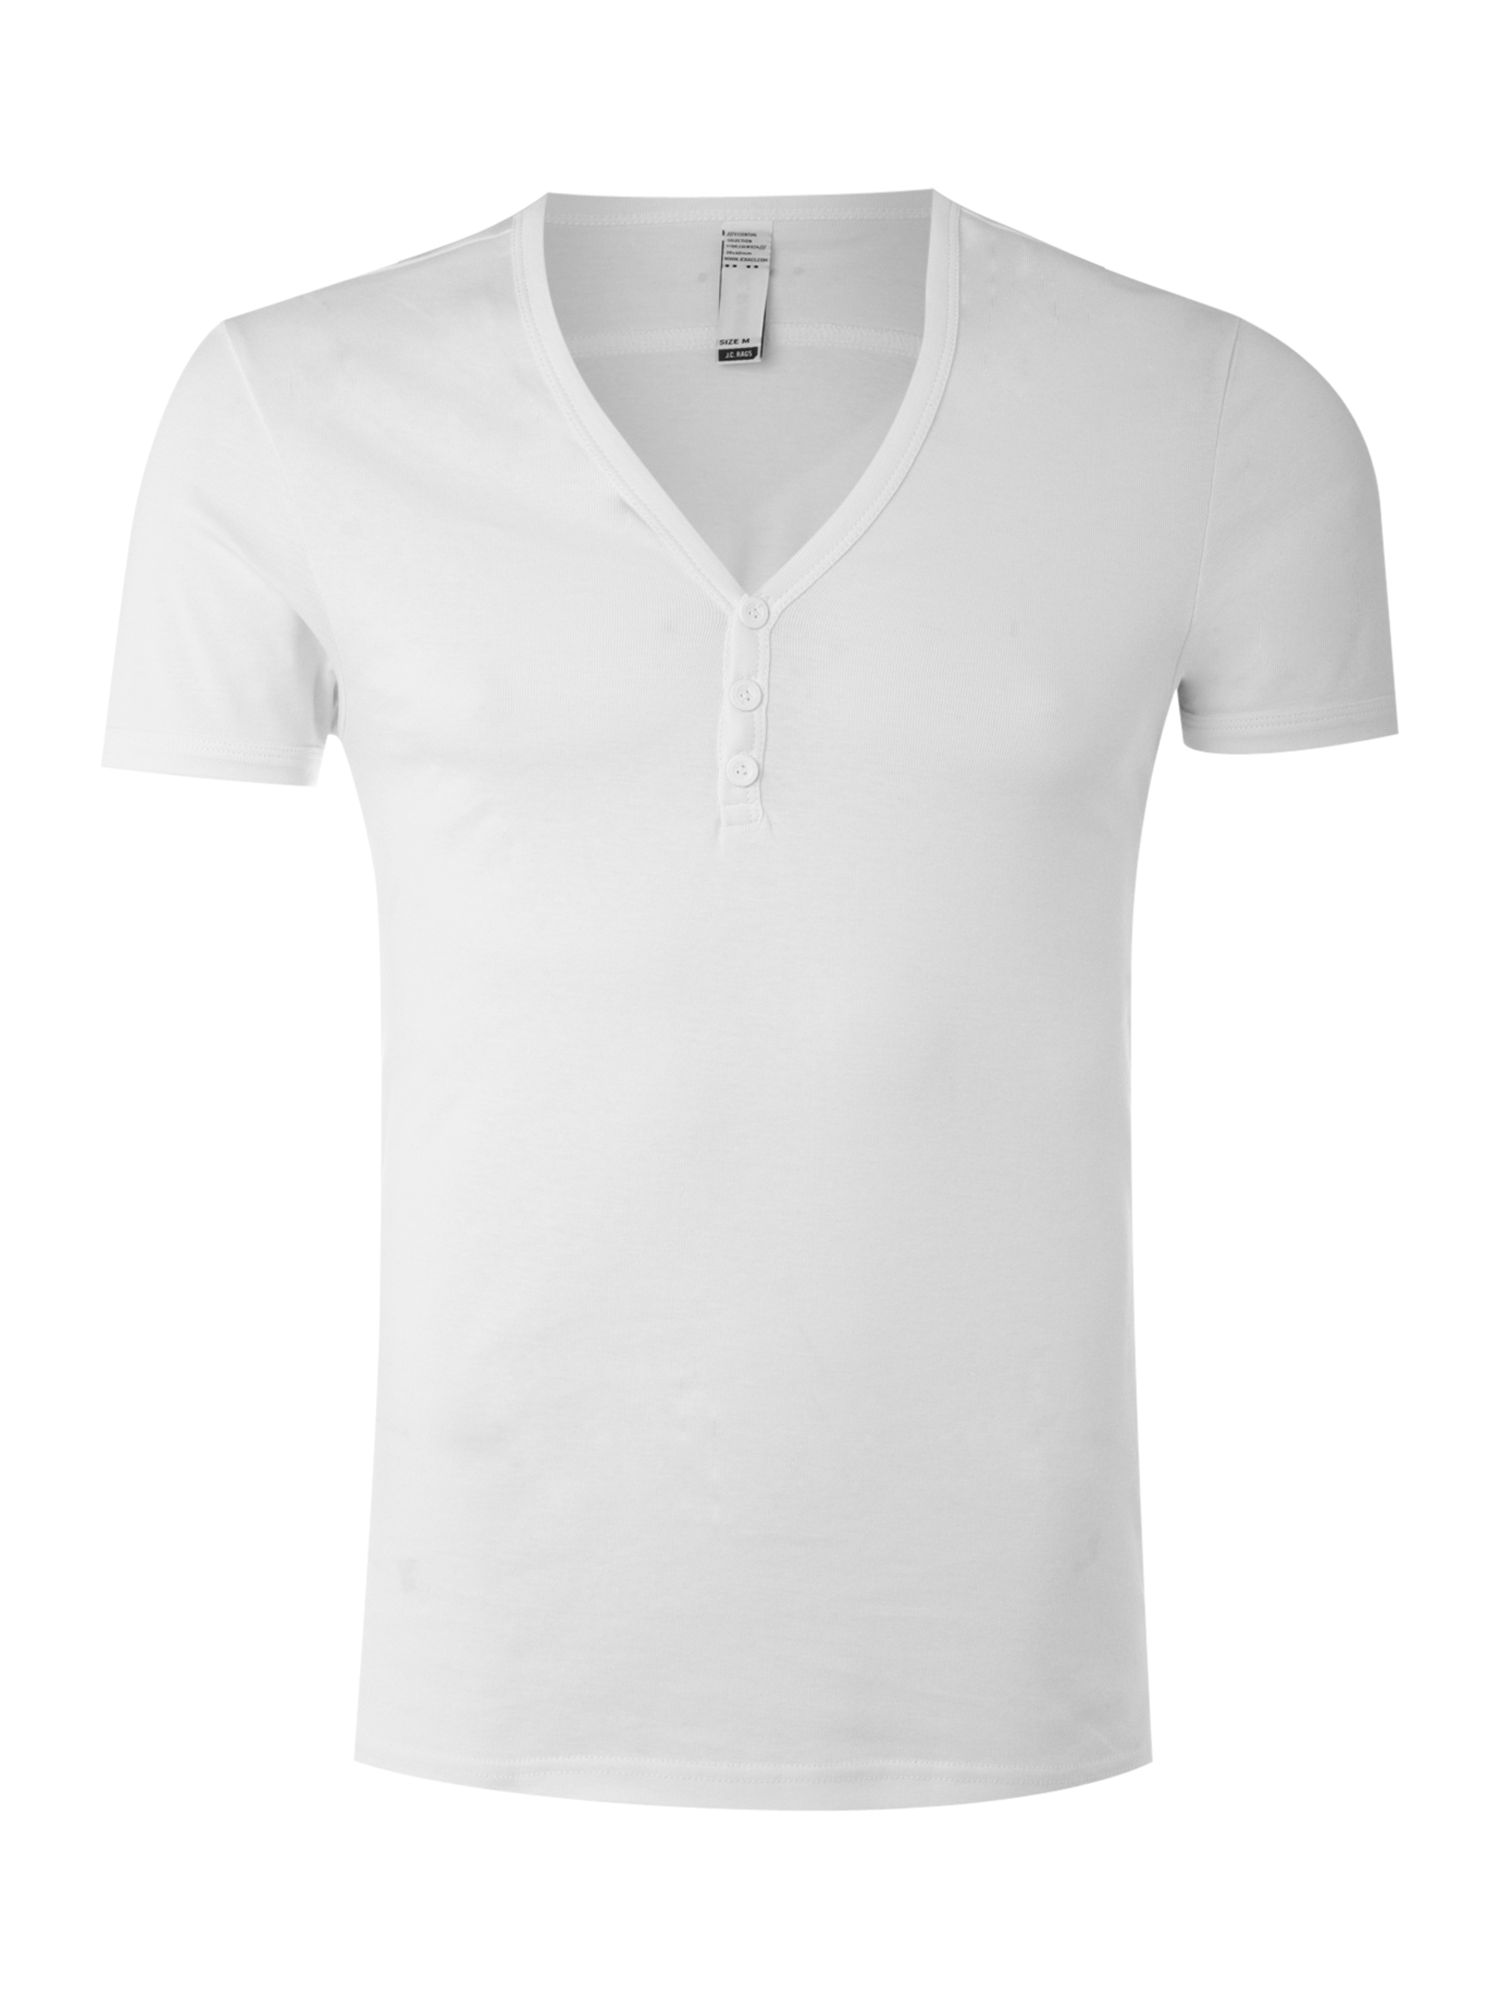 JC Rags V-neck button T-shirt - White product image